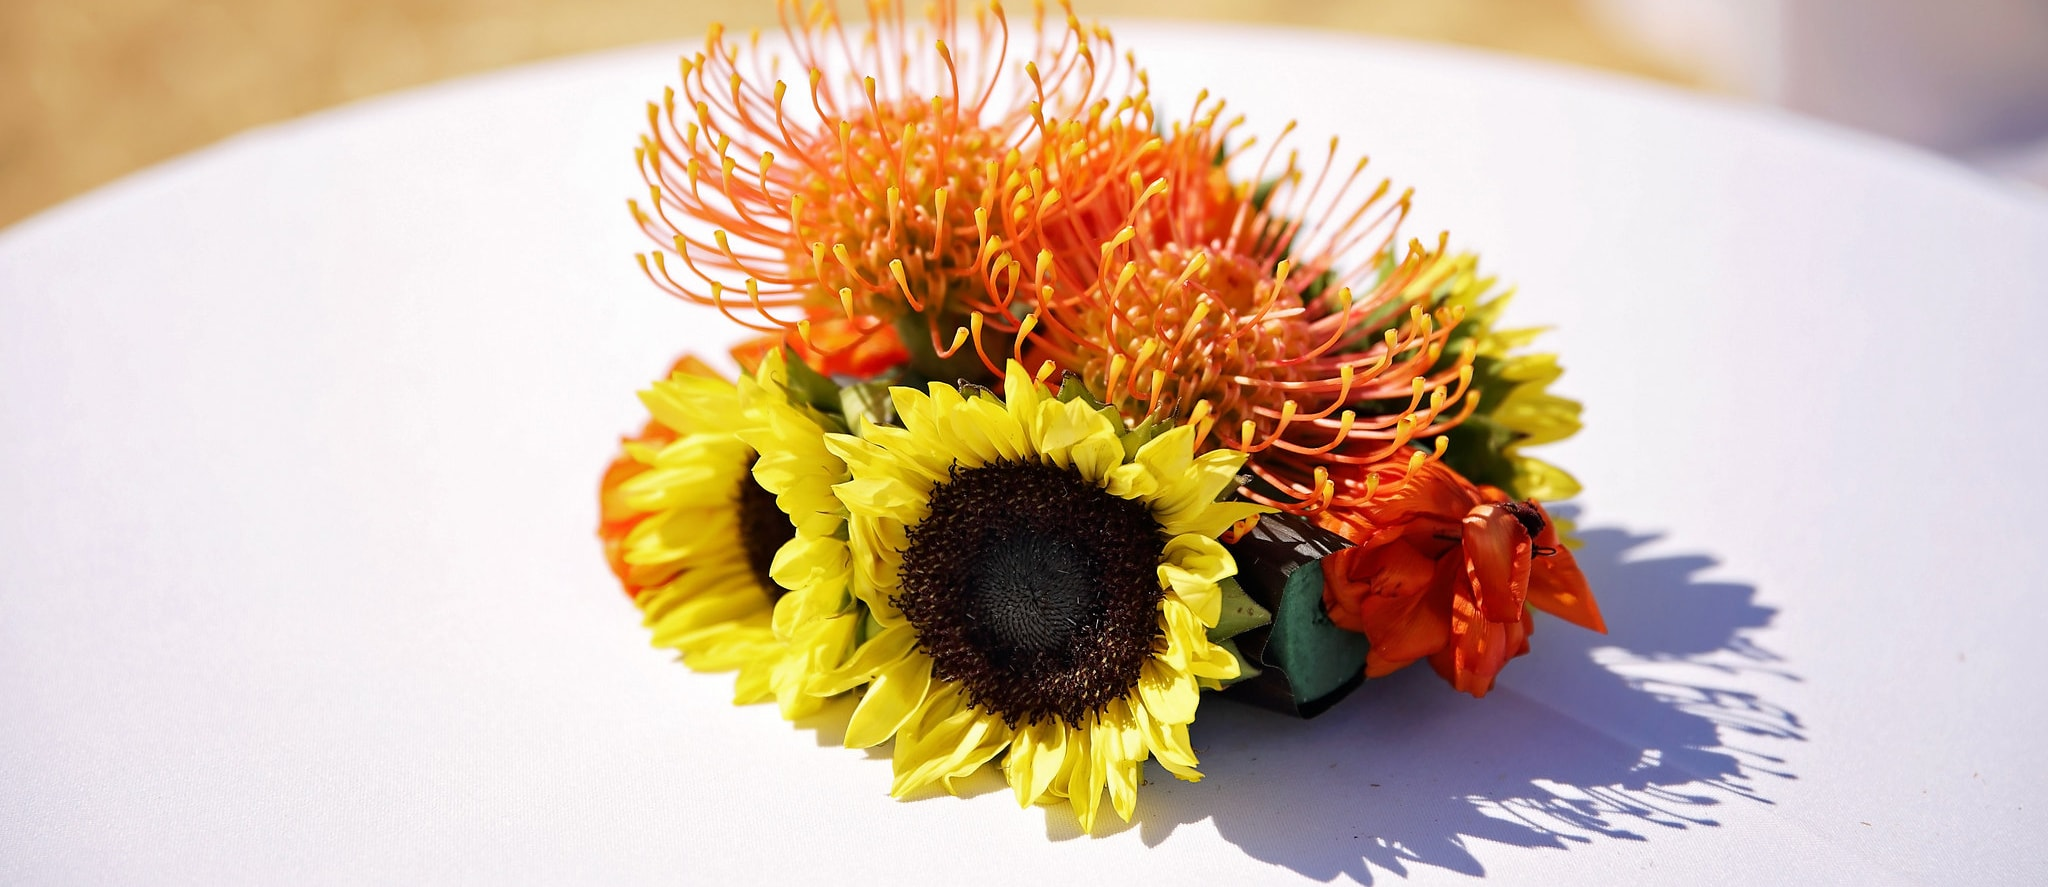 Close up of sunflowers and orange pincushions on a table.